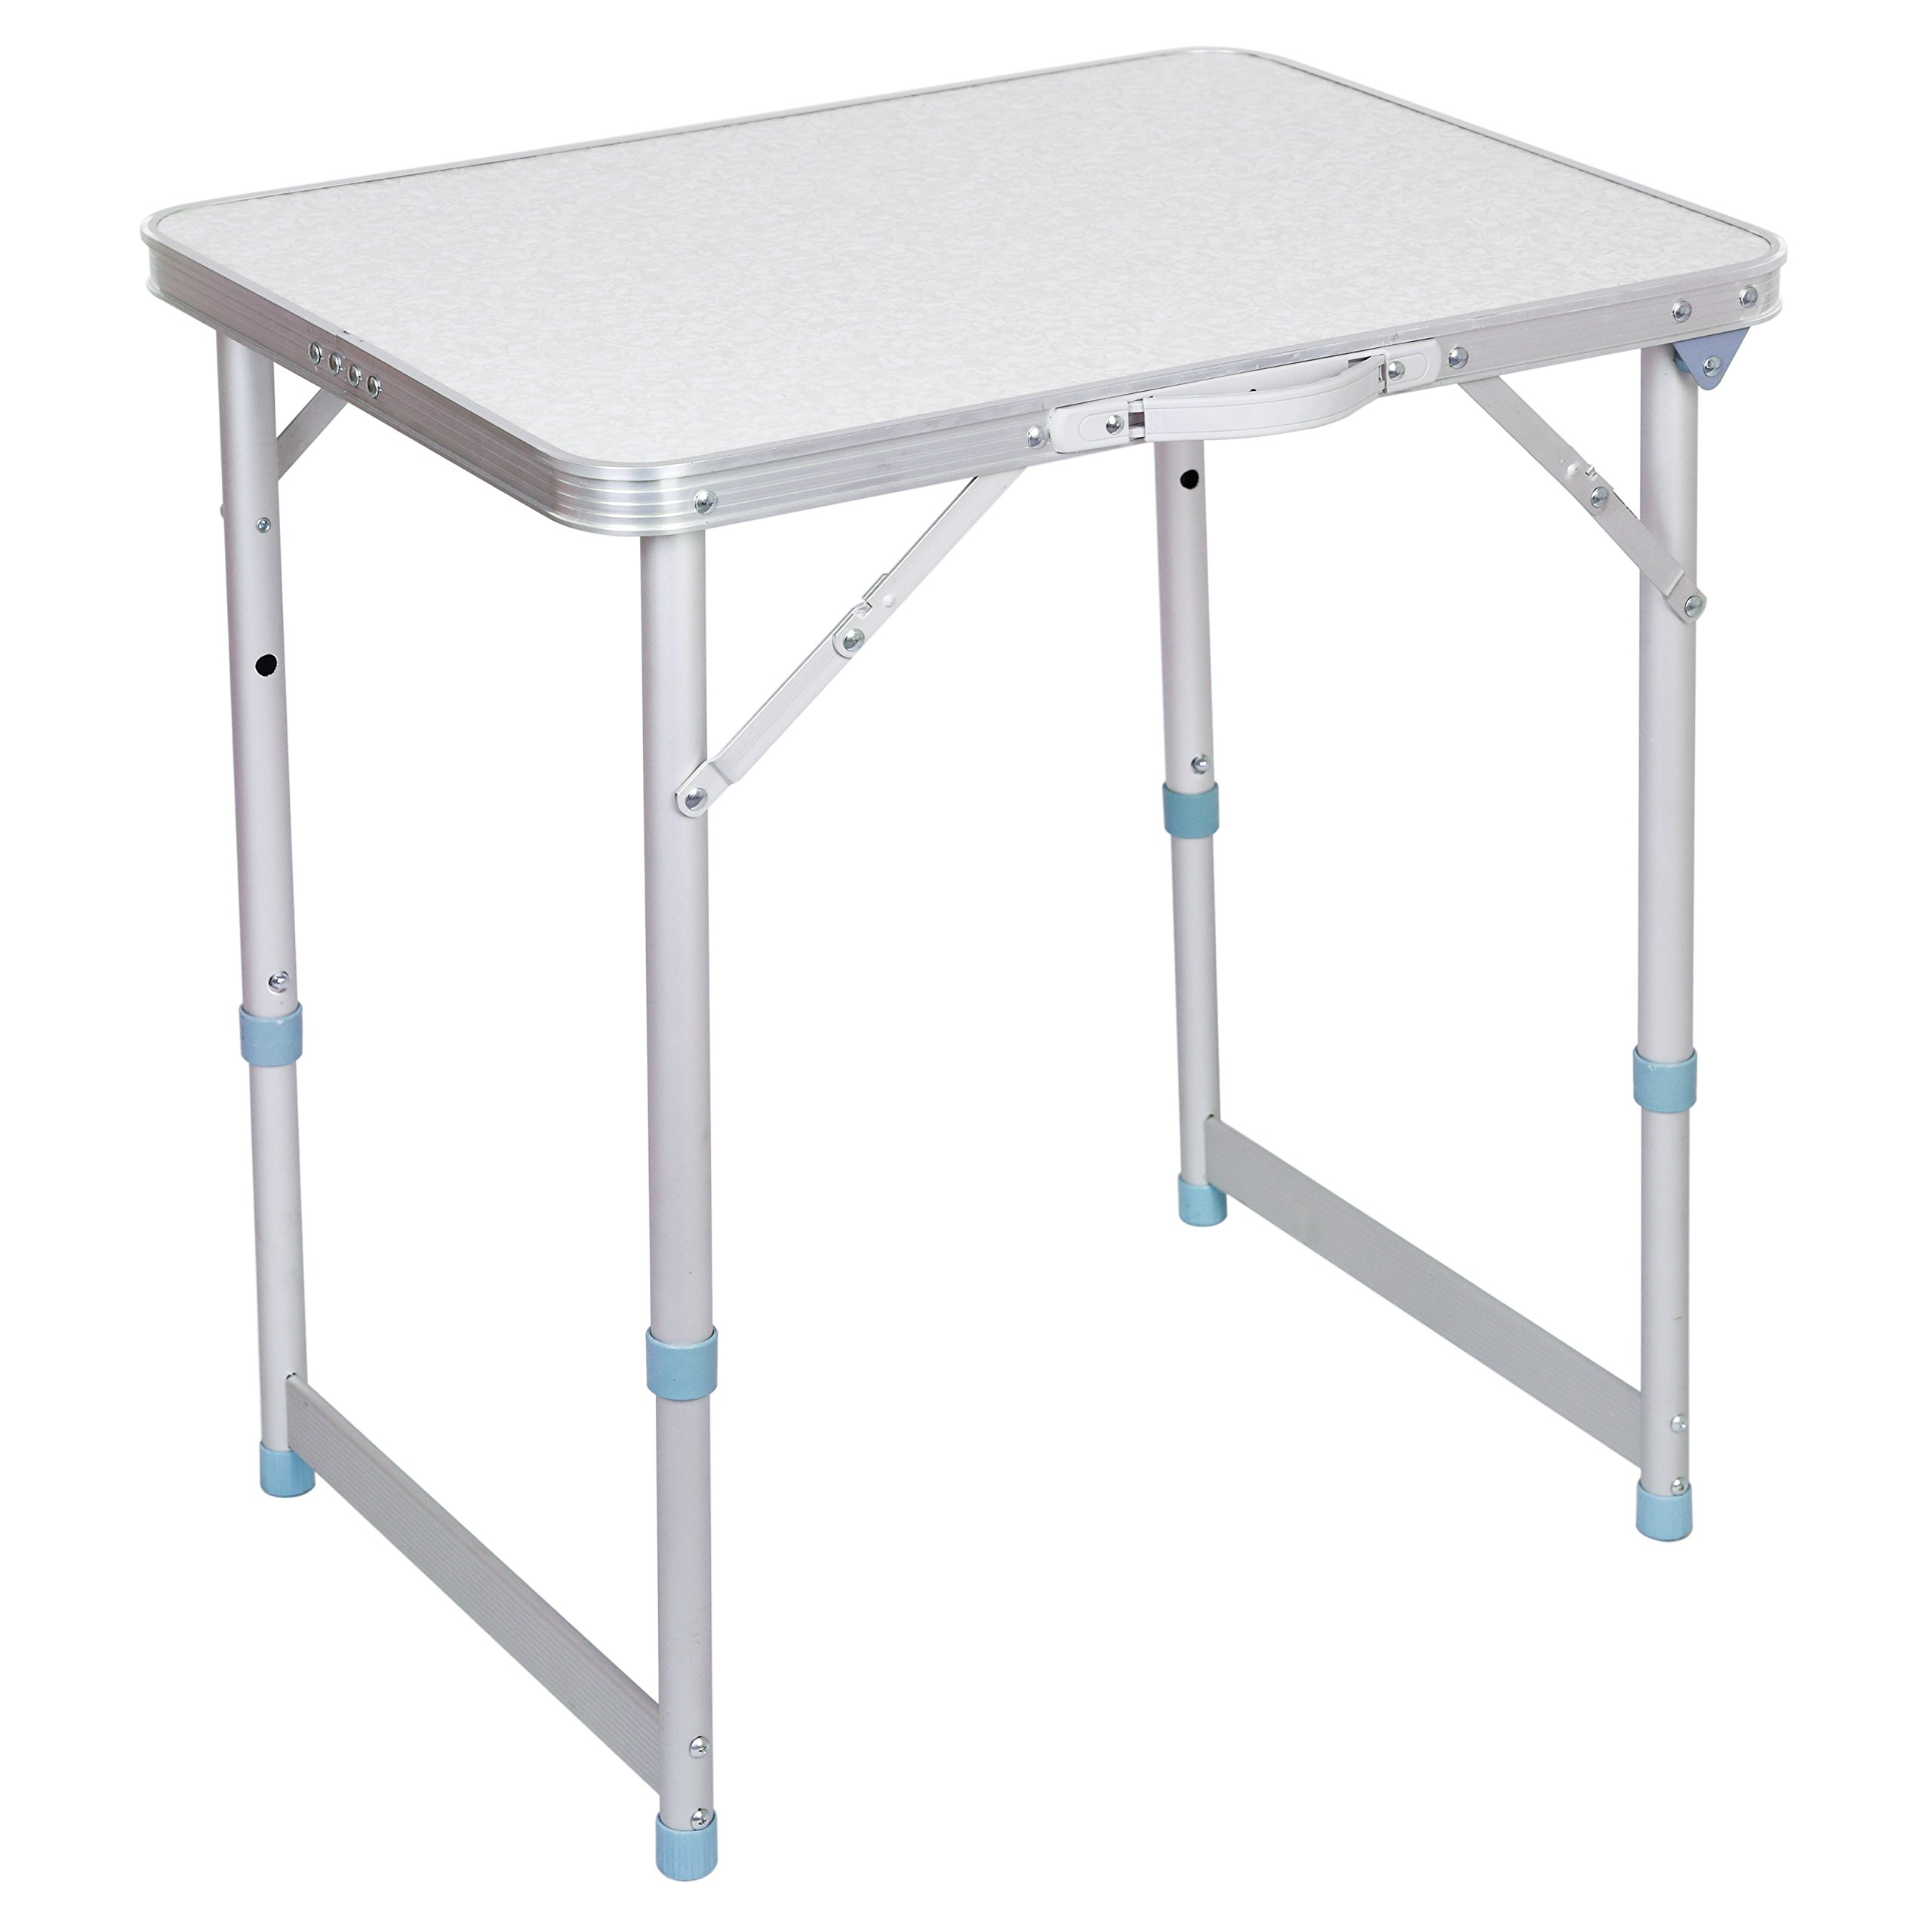 Portable Folding Camp Table with Carrying Handle, Adjustable Picnic Table for Indoor and Outdoor Use